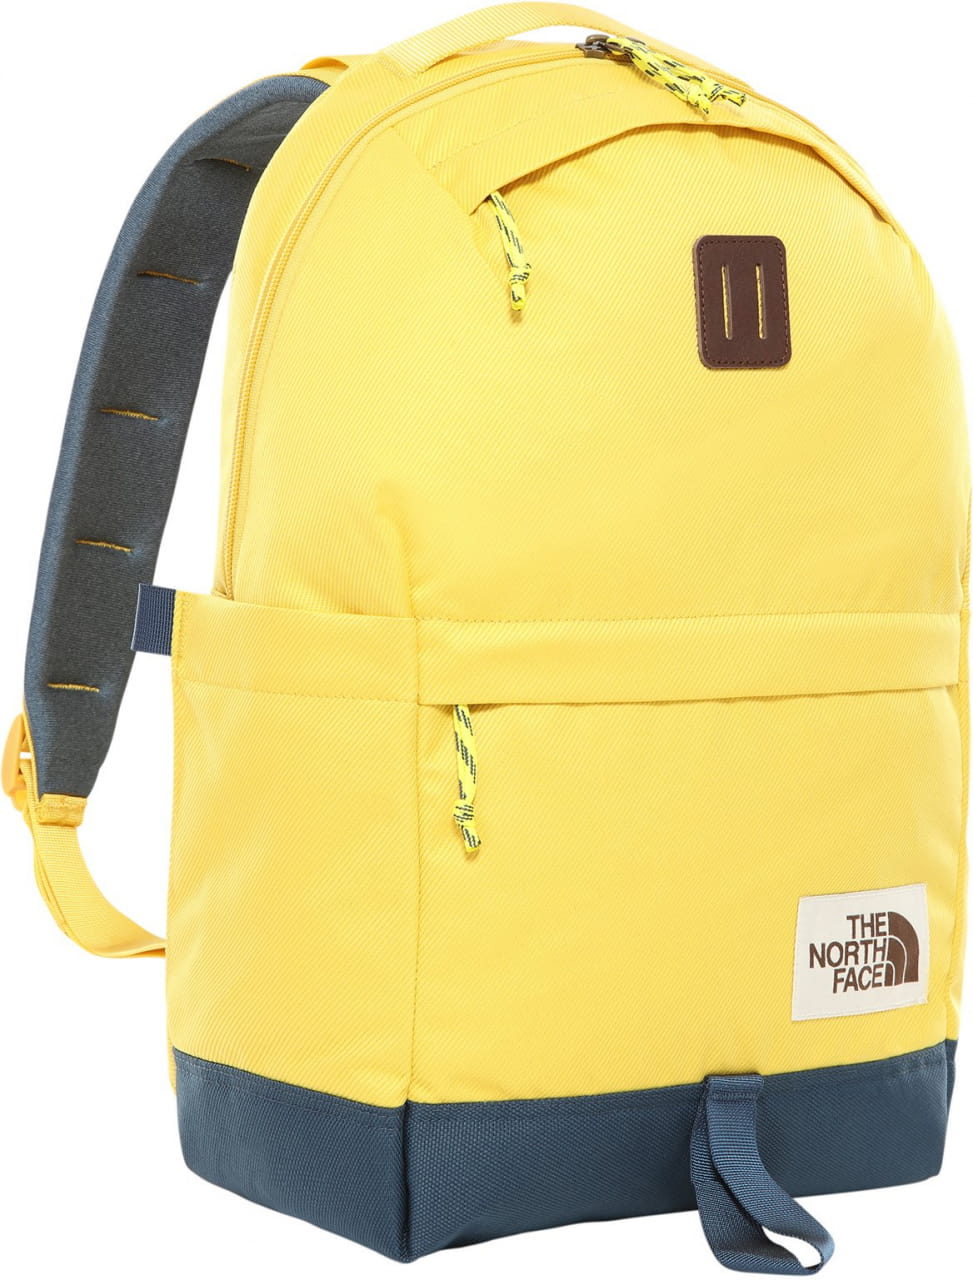 Batoh The North Face Daypack Backpack